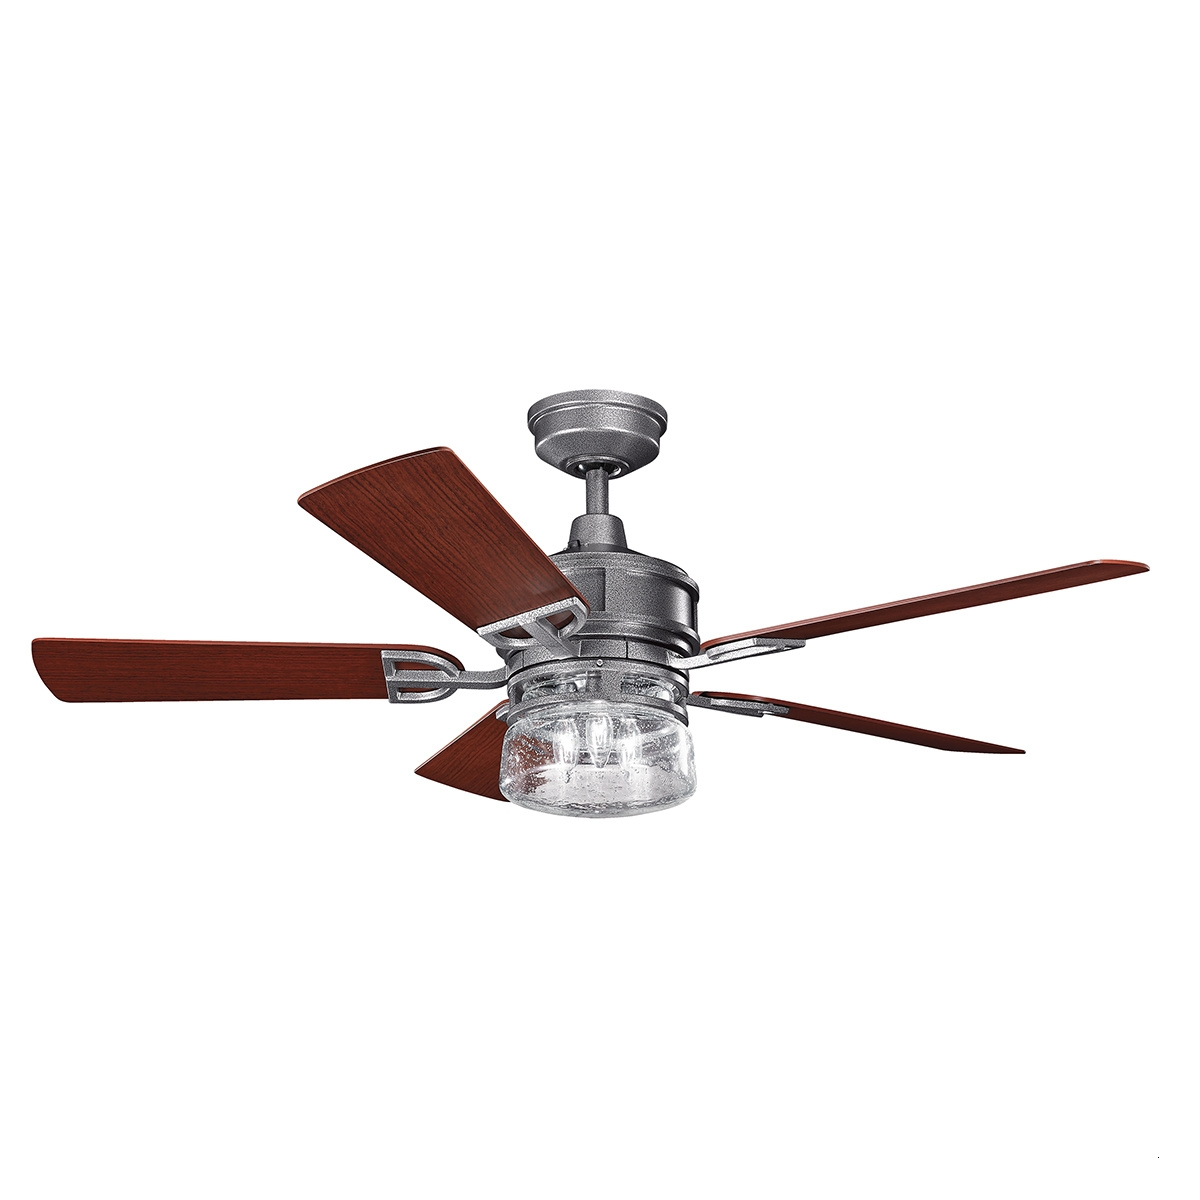 "Outdoor Ceiling Fans With Lights Wet Rated Attractive 52"" Lyndon Regarding Best And Newest Wet Rated Outdoor Ceiling Fans With Light (Gallery 14 of 20)"